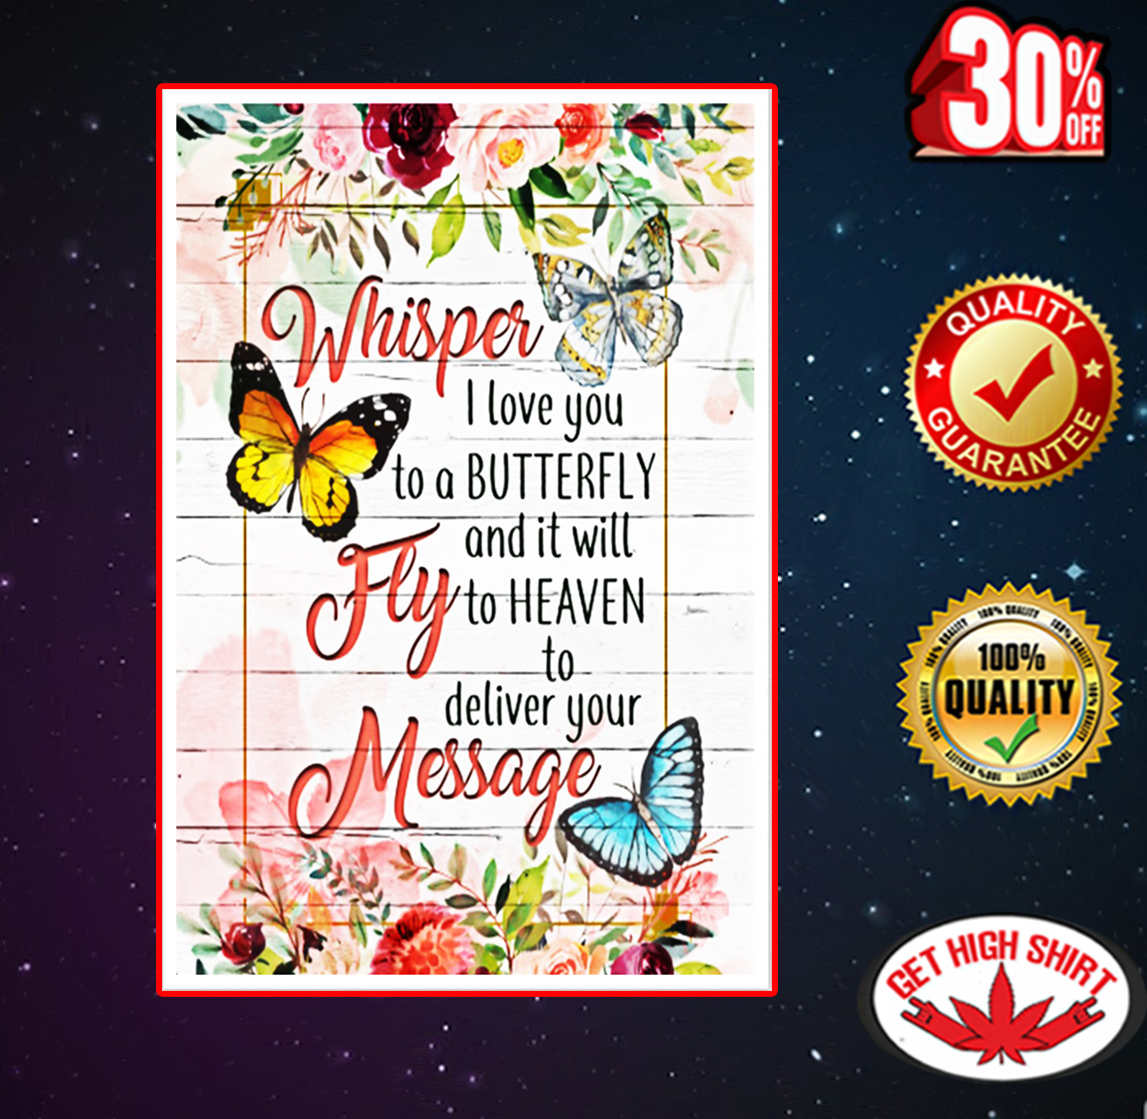 Whisper I love you to a butterfly and it will fly to heaven poster 11x17